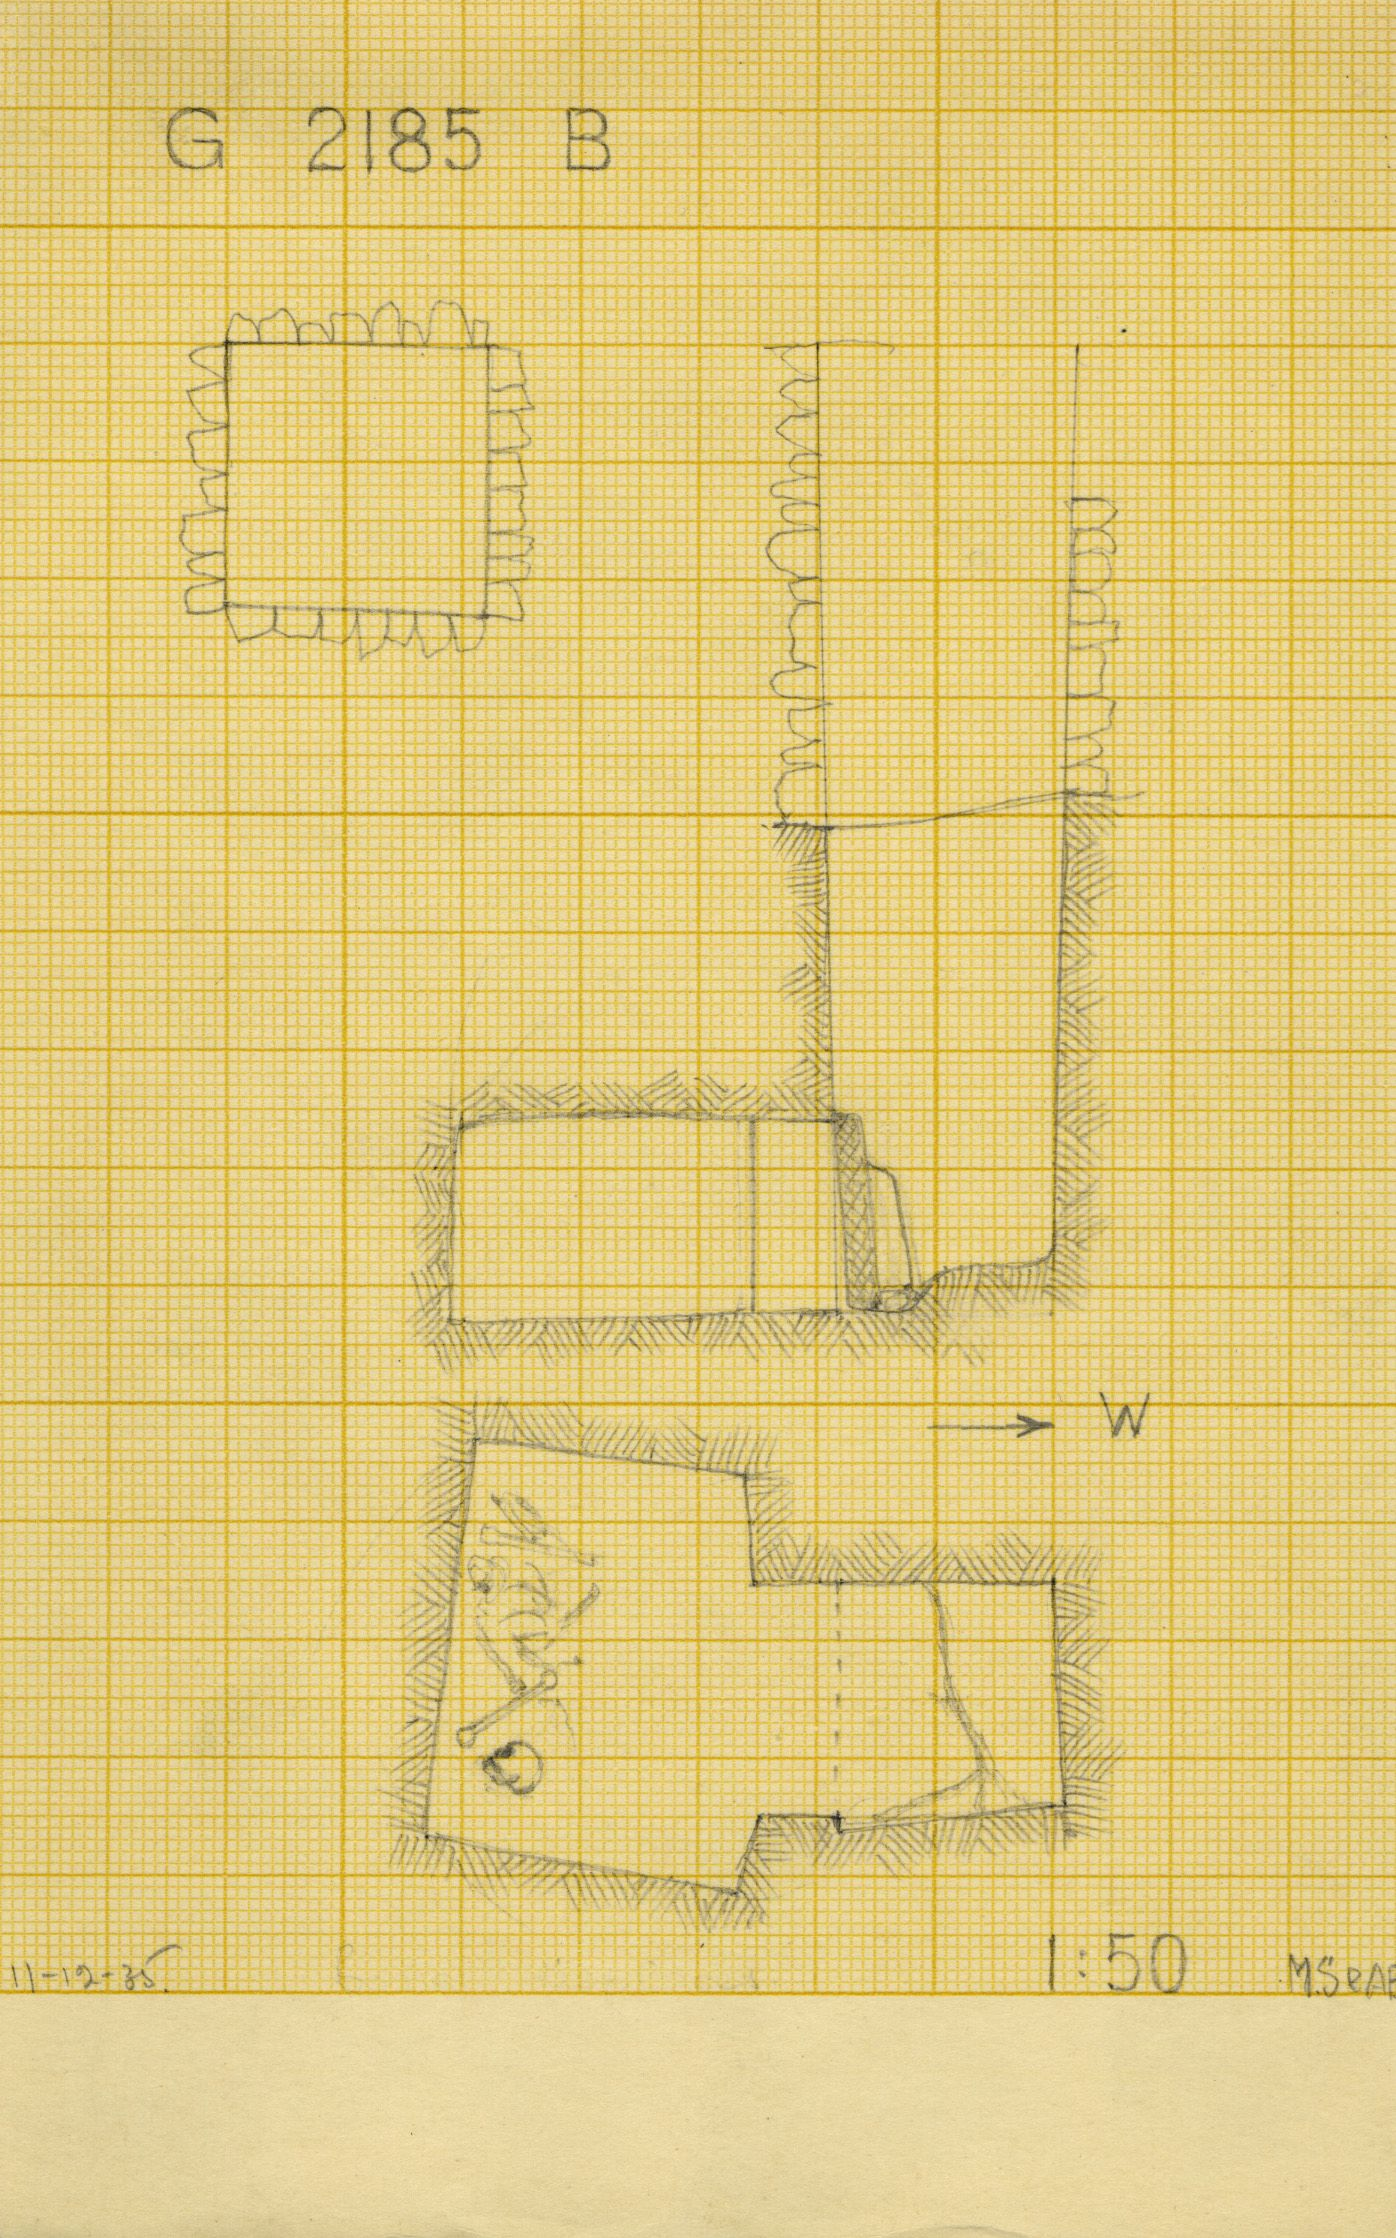 Maps and plans: G 2185, Shaft B